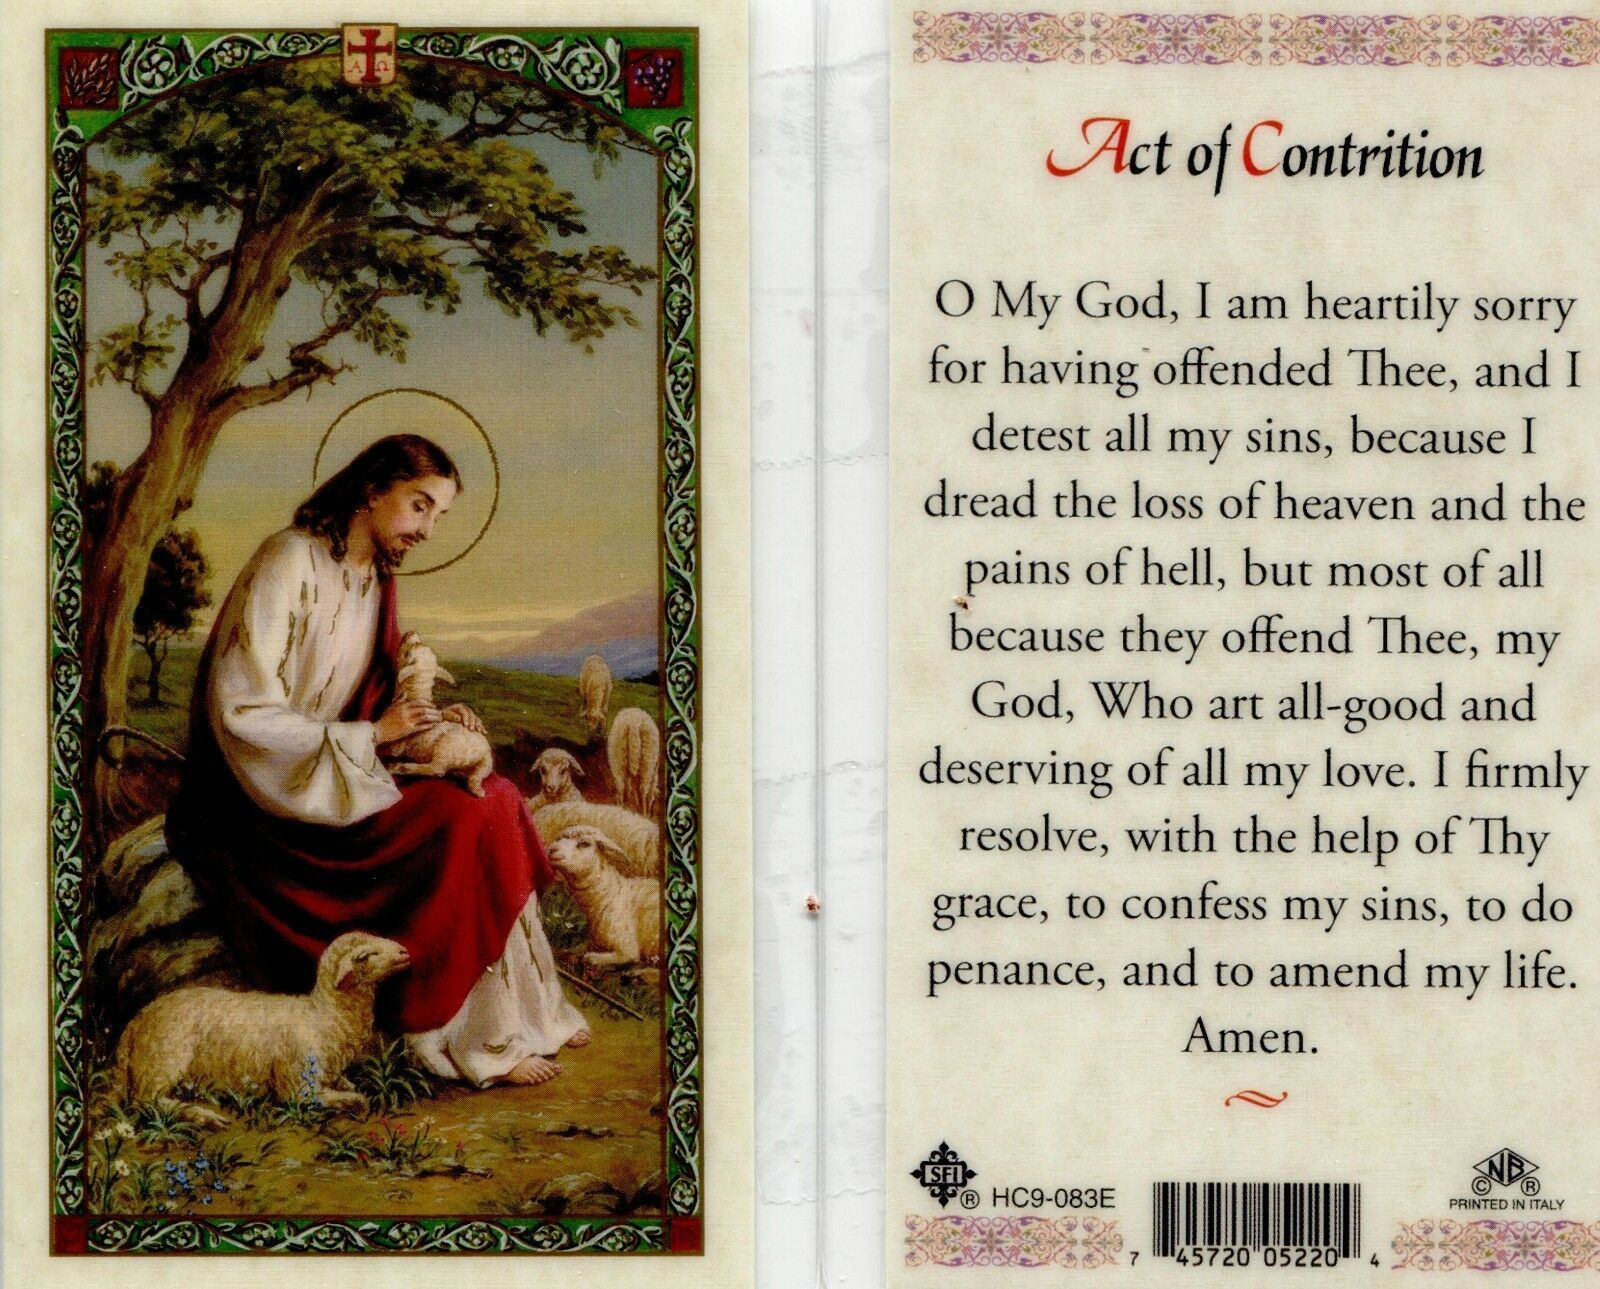 Primary image for Act of Contrition Holy Card - EB186 - My God I am Heartily Sorry - Top Sellers